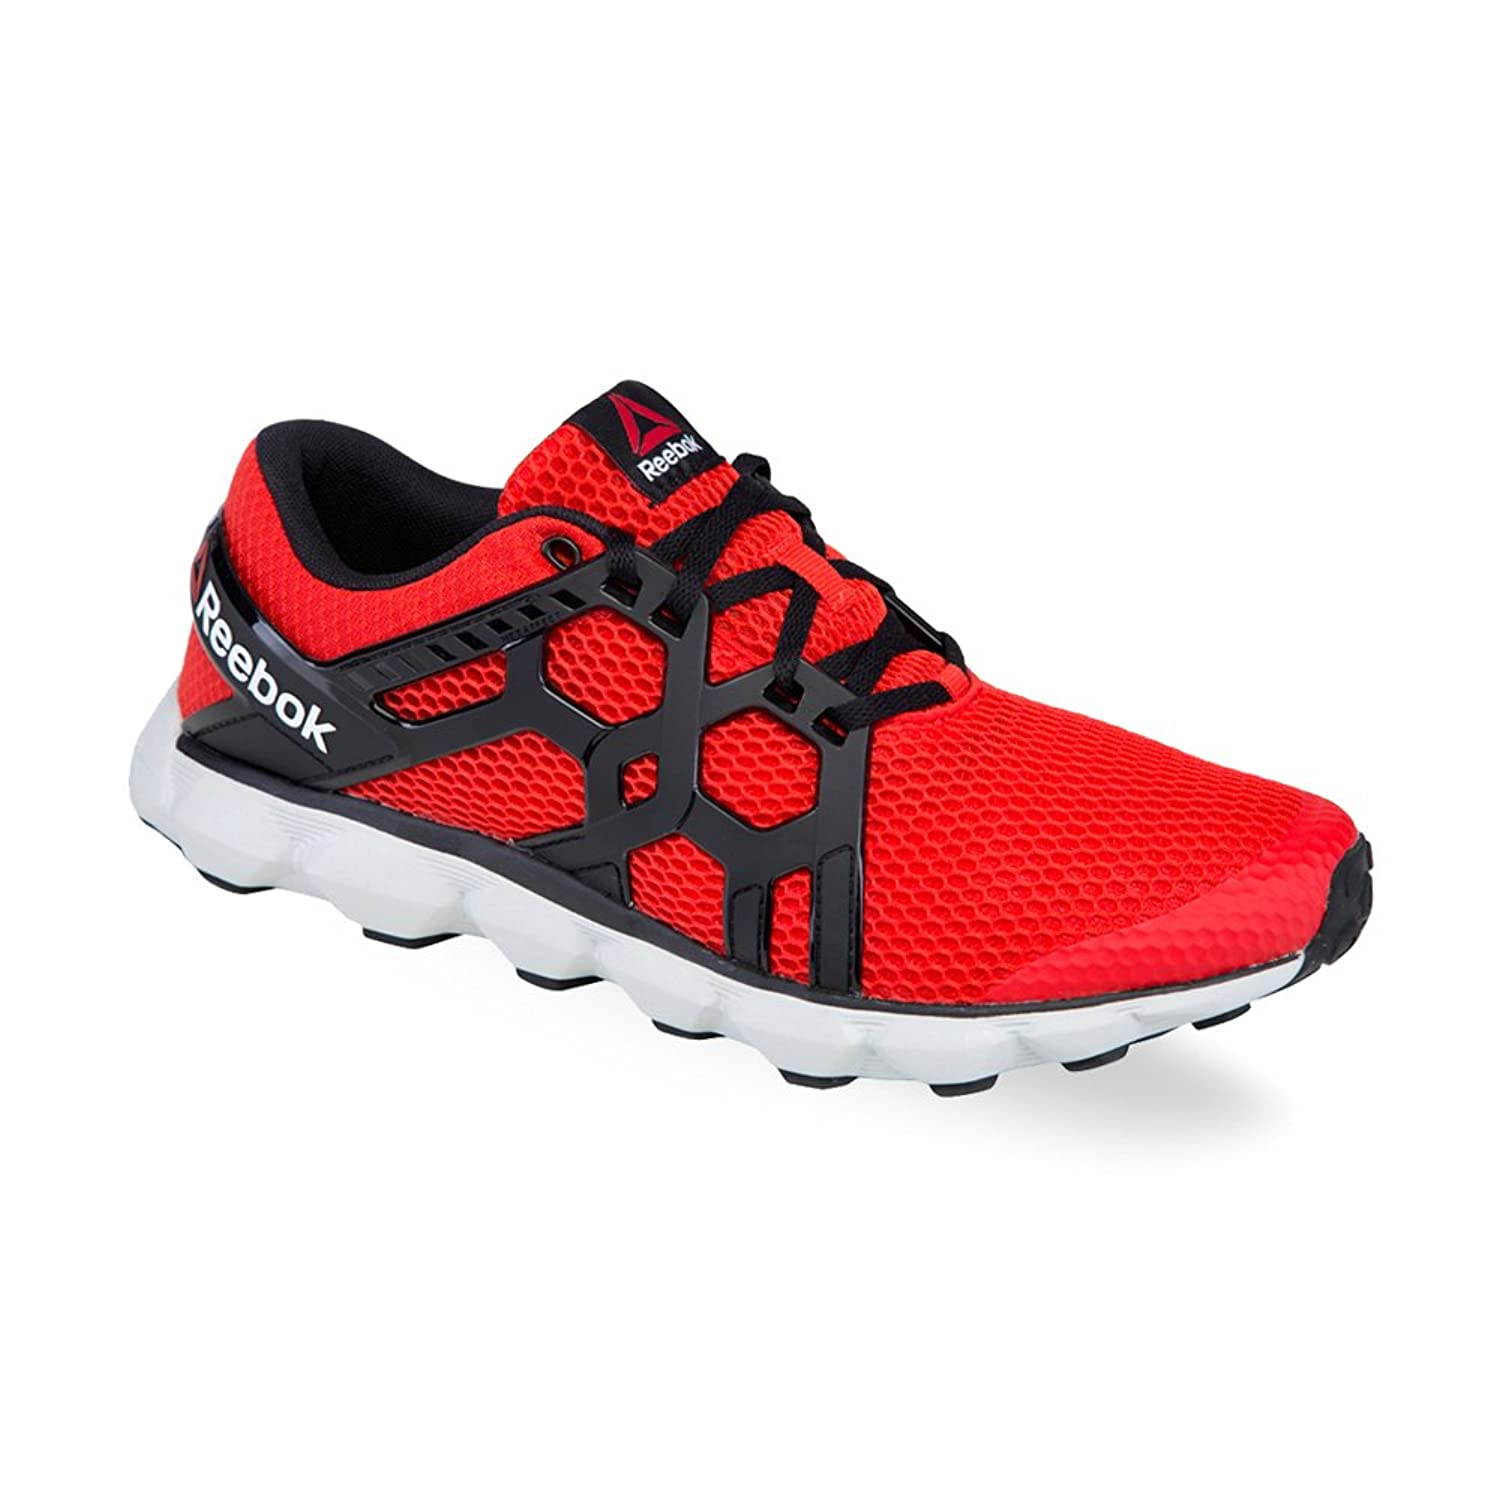 Red Women's Shoes: techclux.gq - Your Online Women's Shoes Store! Get 5% in rewards with Club O! Coupon Activated! Skip to main content FREE Shipping & Easy Returns* Search. Earn Rewards with Overstock. Missed Rewards. You've missed out on Club O .